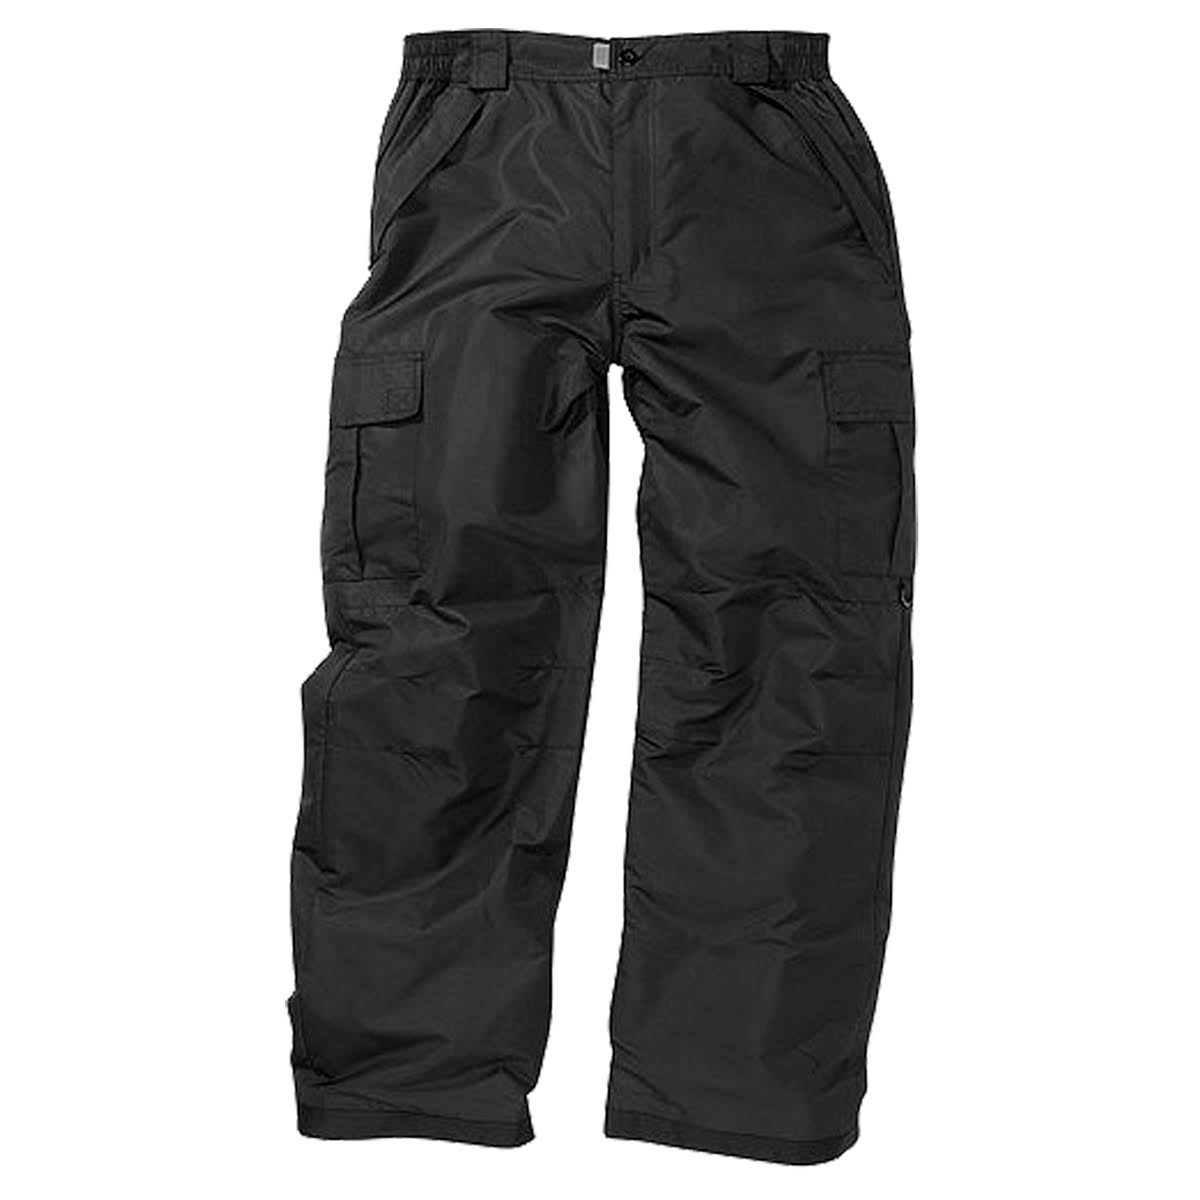 World Famous Sports Men's Cargo Snow Pants - Black - M